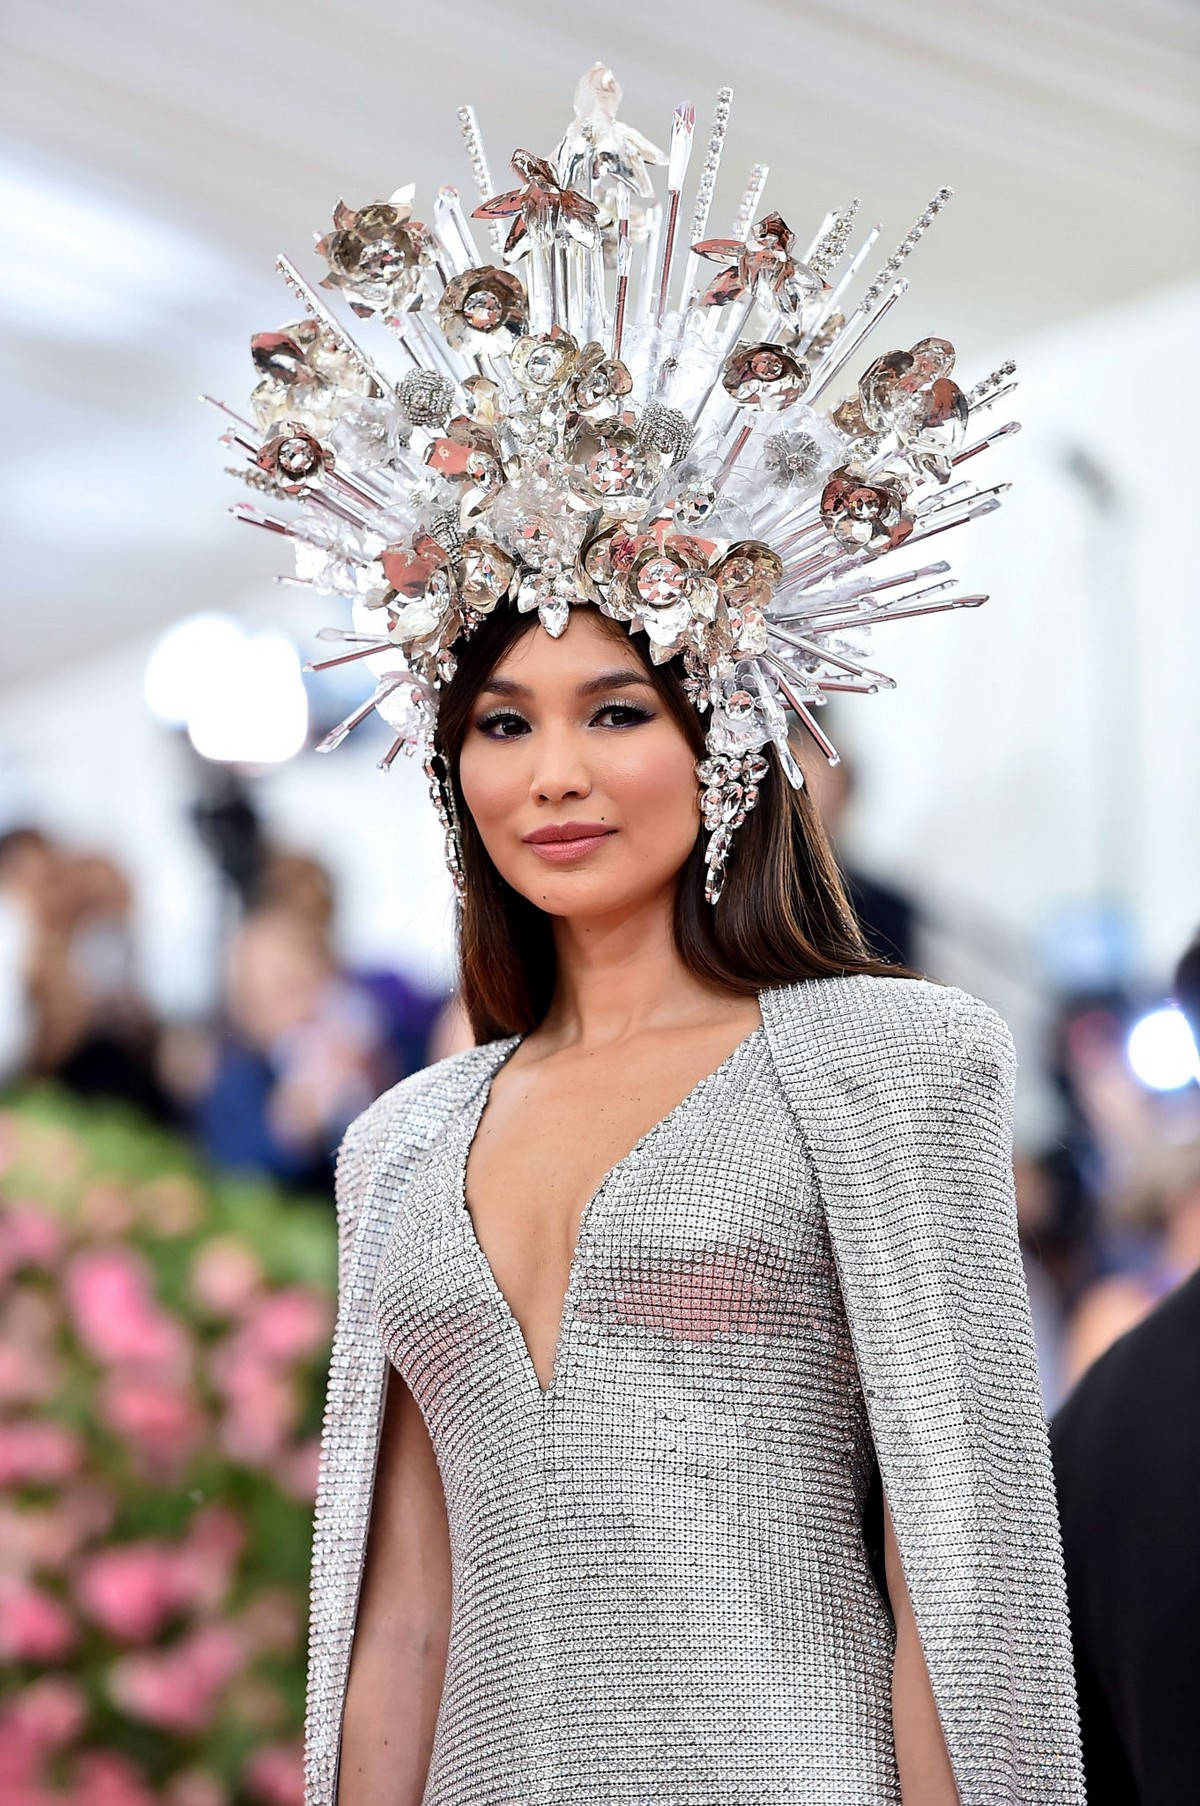 gemma-chan-at-the-mark-hotel-for-the-2019-camp-notes-on-fashion-met-gala-in-new-york-2019-05-06-09.jpg